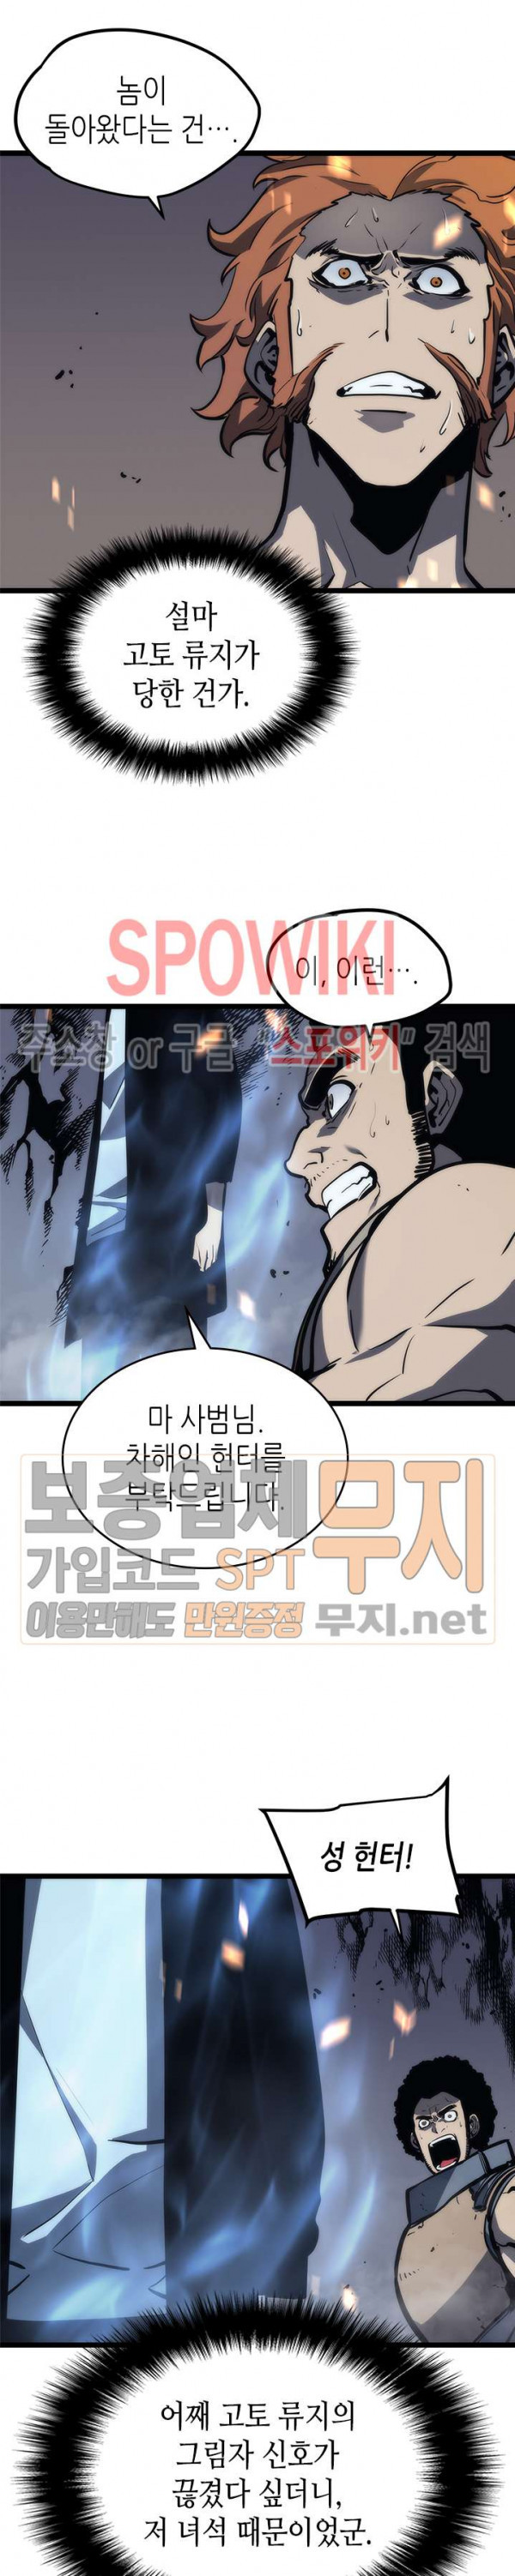 Manga Raw Solo Leveling Chapter 101